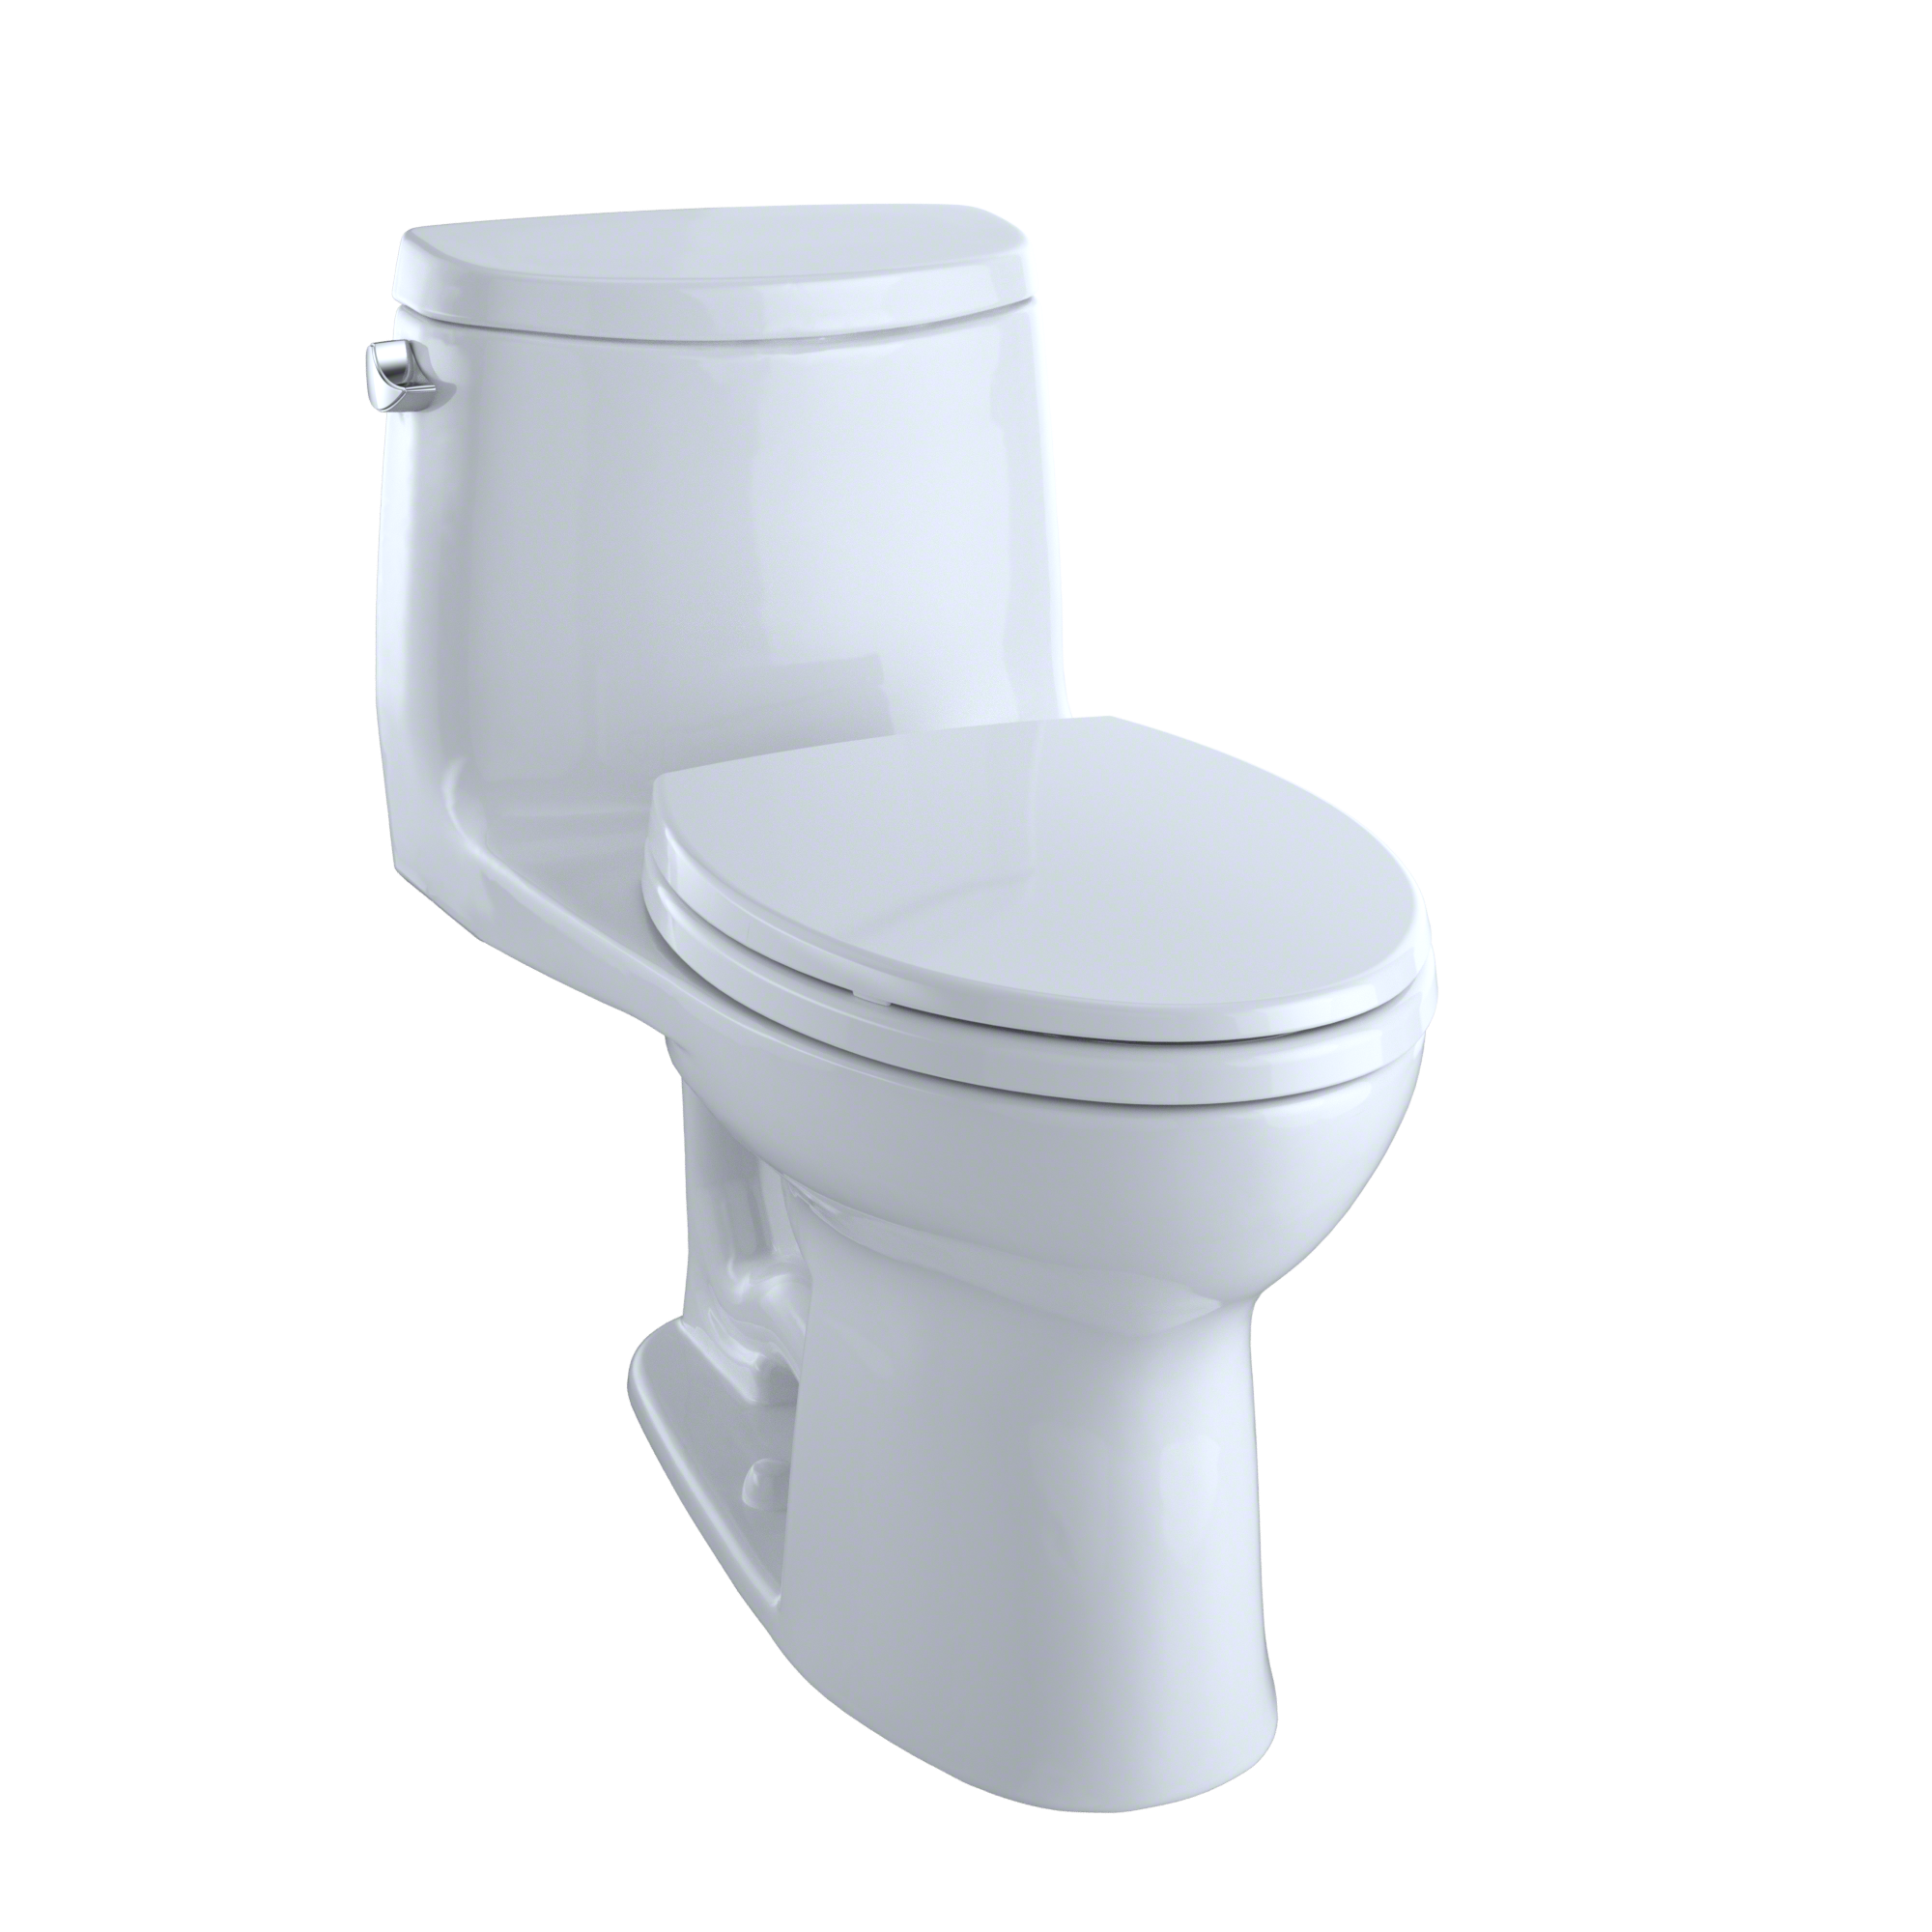 TOTO® UltraMax® II One-Piece Elongated 1.28 GPF Universal Height Toilet with CeFiONtect™, Cotton White - MS604114CEFG#01